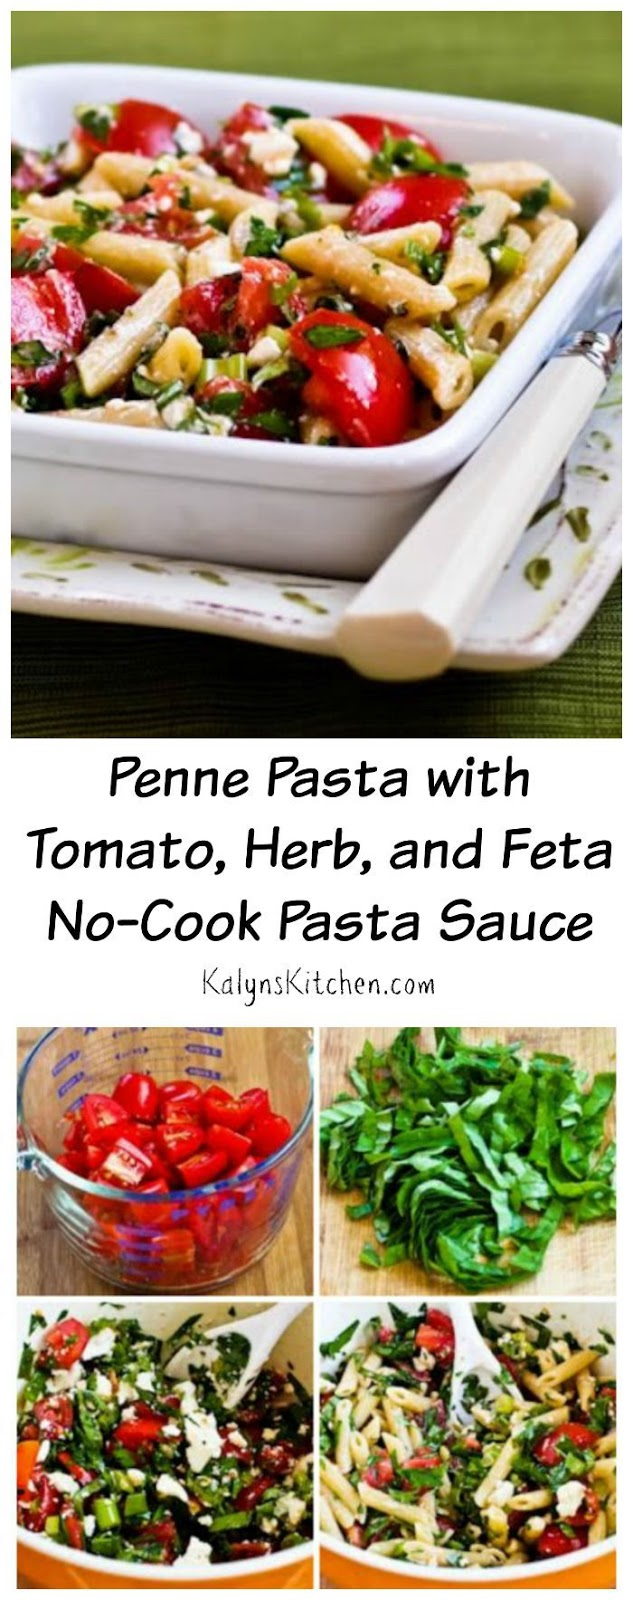 Recipe for Penne Pasta with Tomato, Herb, and Feta No-Cook Pasta Sauce ...